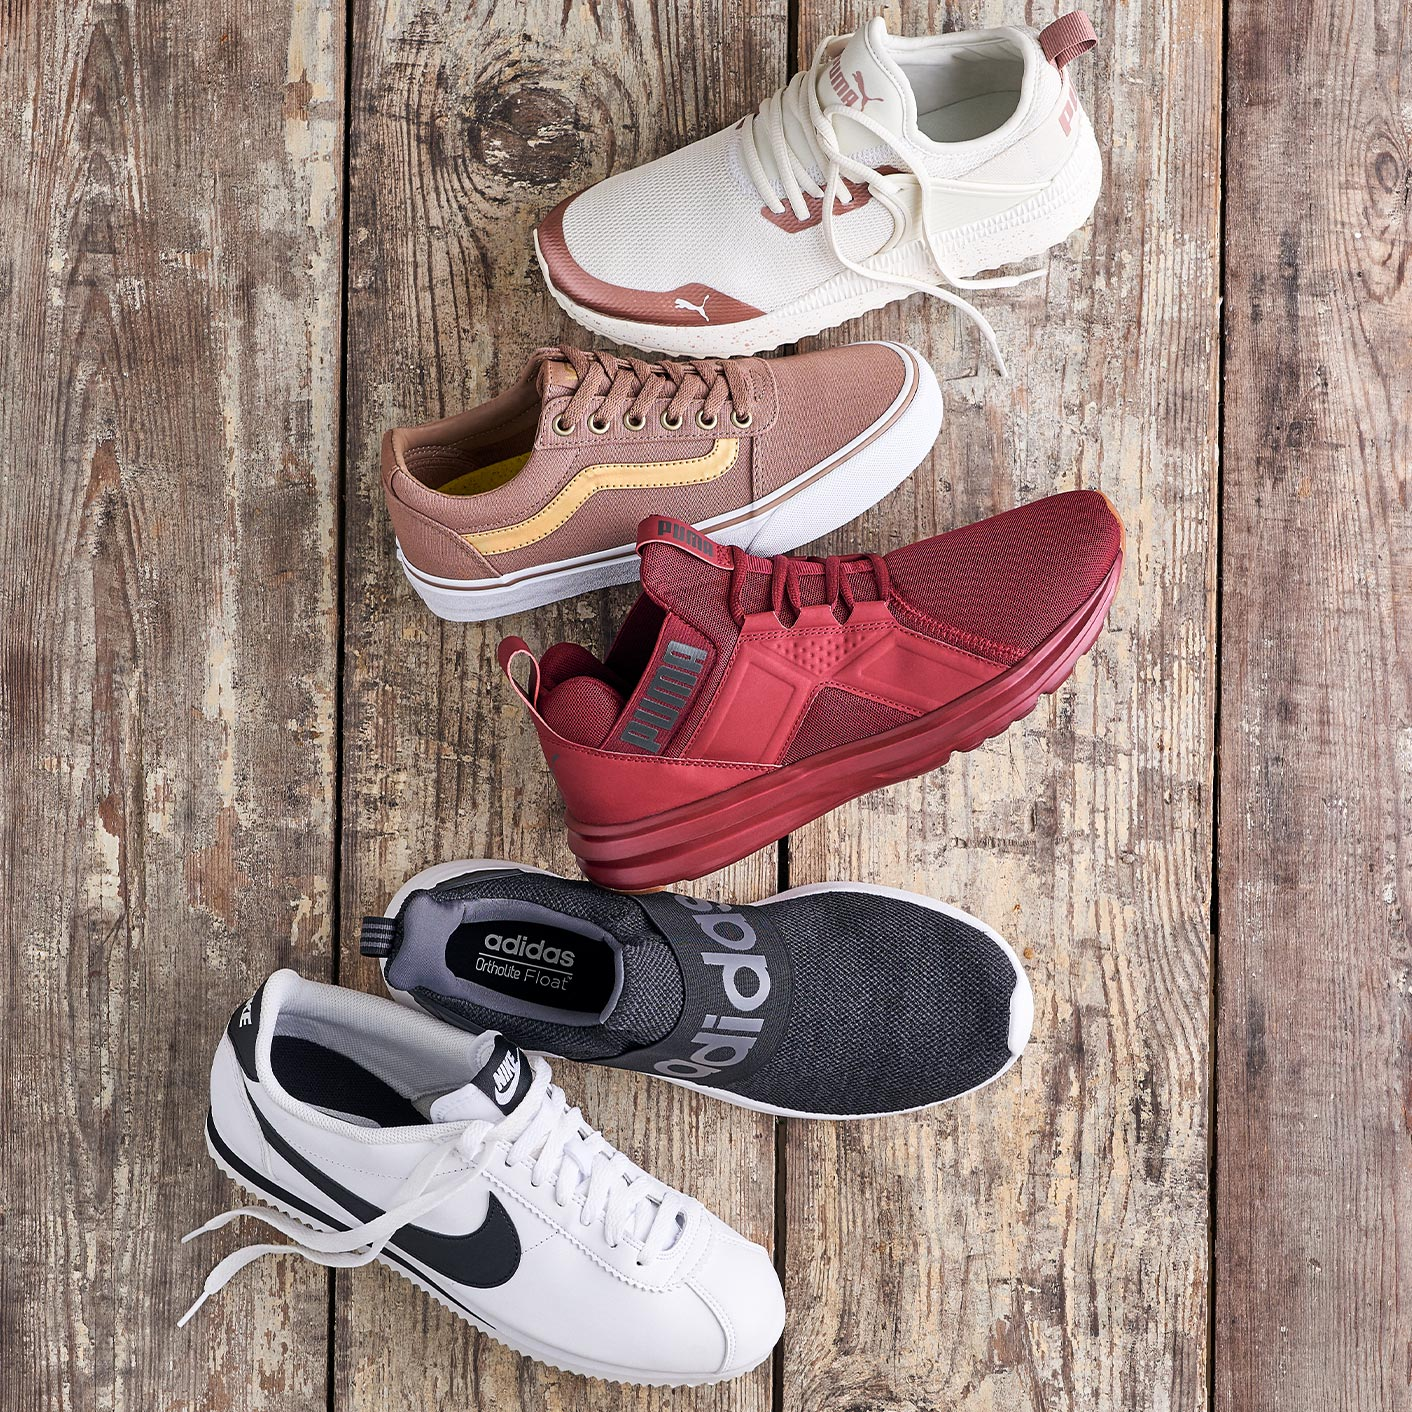 Assorted vans, puma, adidas, and nike athletic sneakers